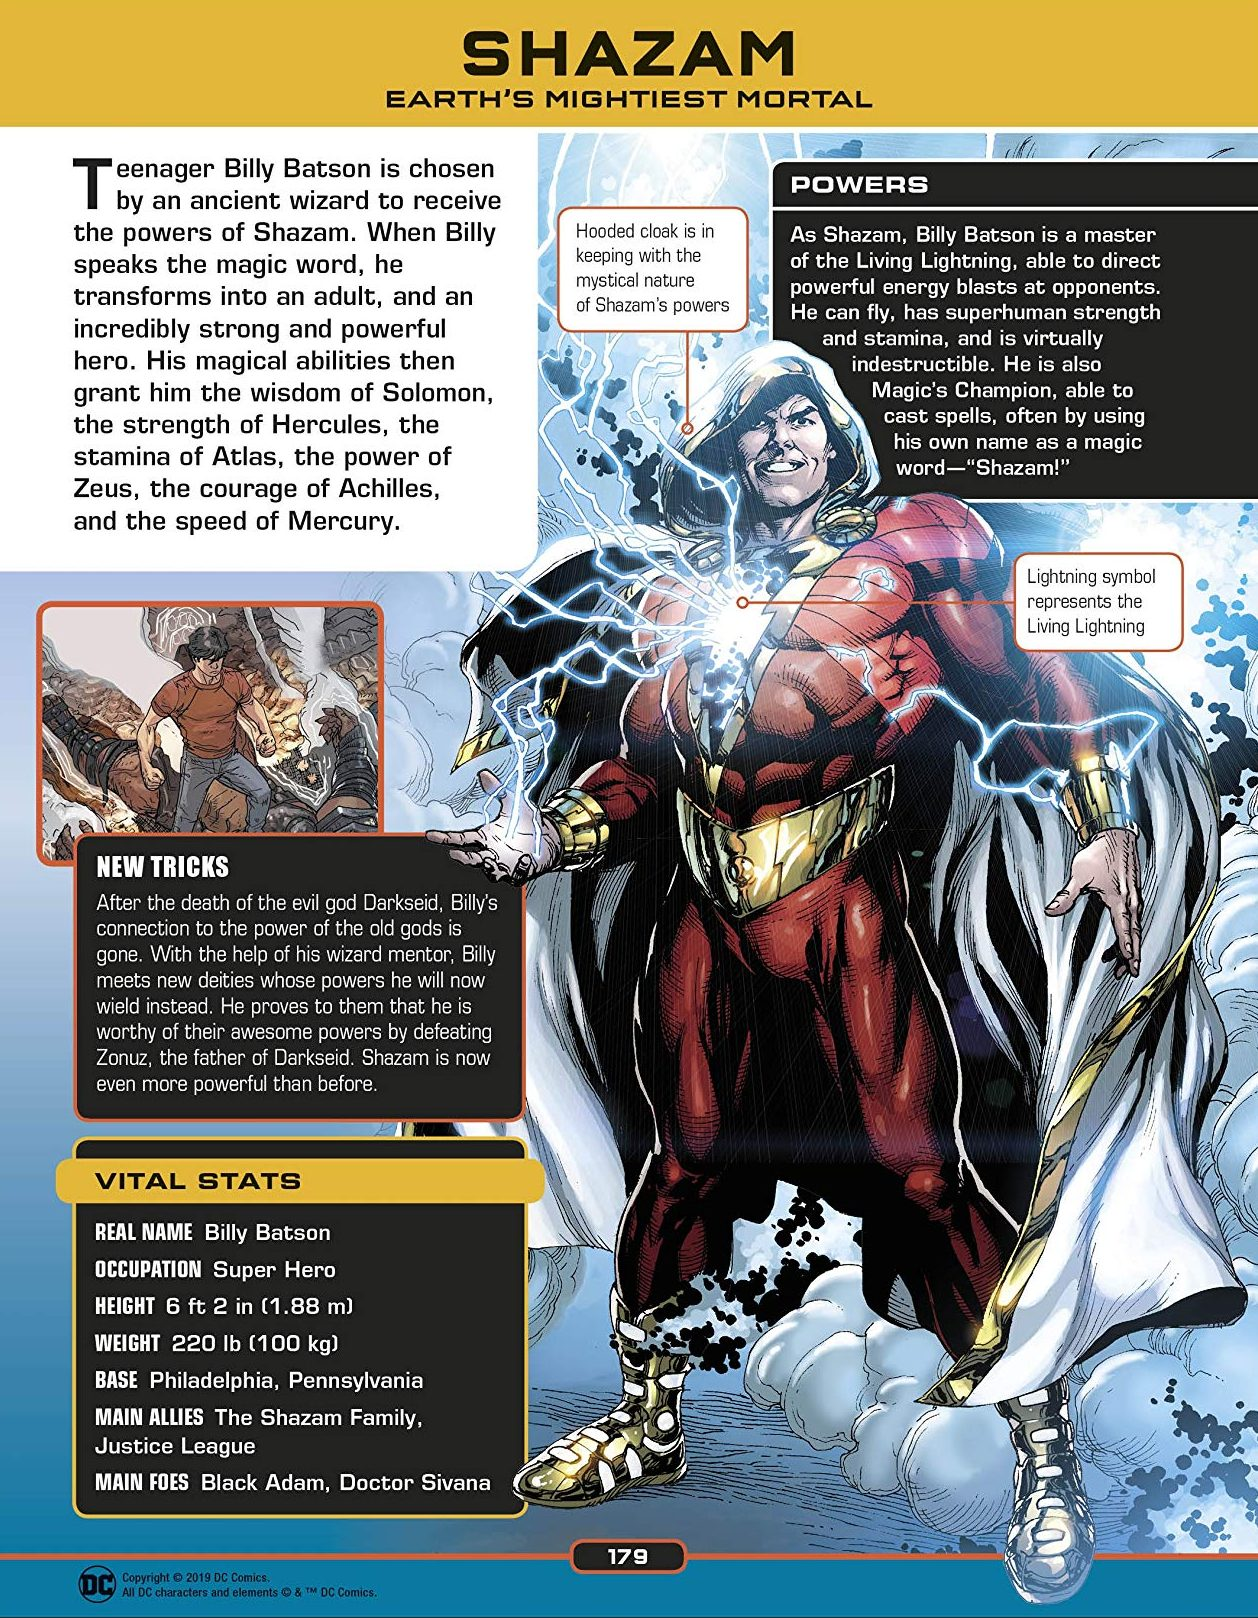 (1) An early scene in the movie includes the old Wizard Shazam explaining with imagery to Billy Batson that a champion was picked before him and that they ...